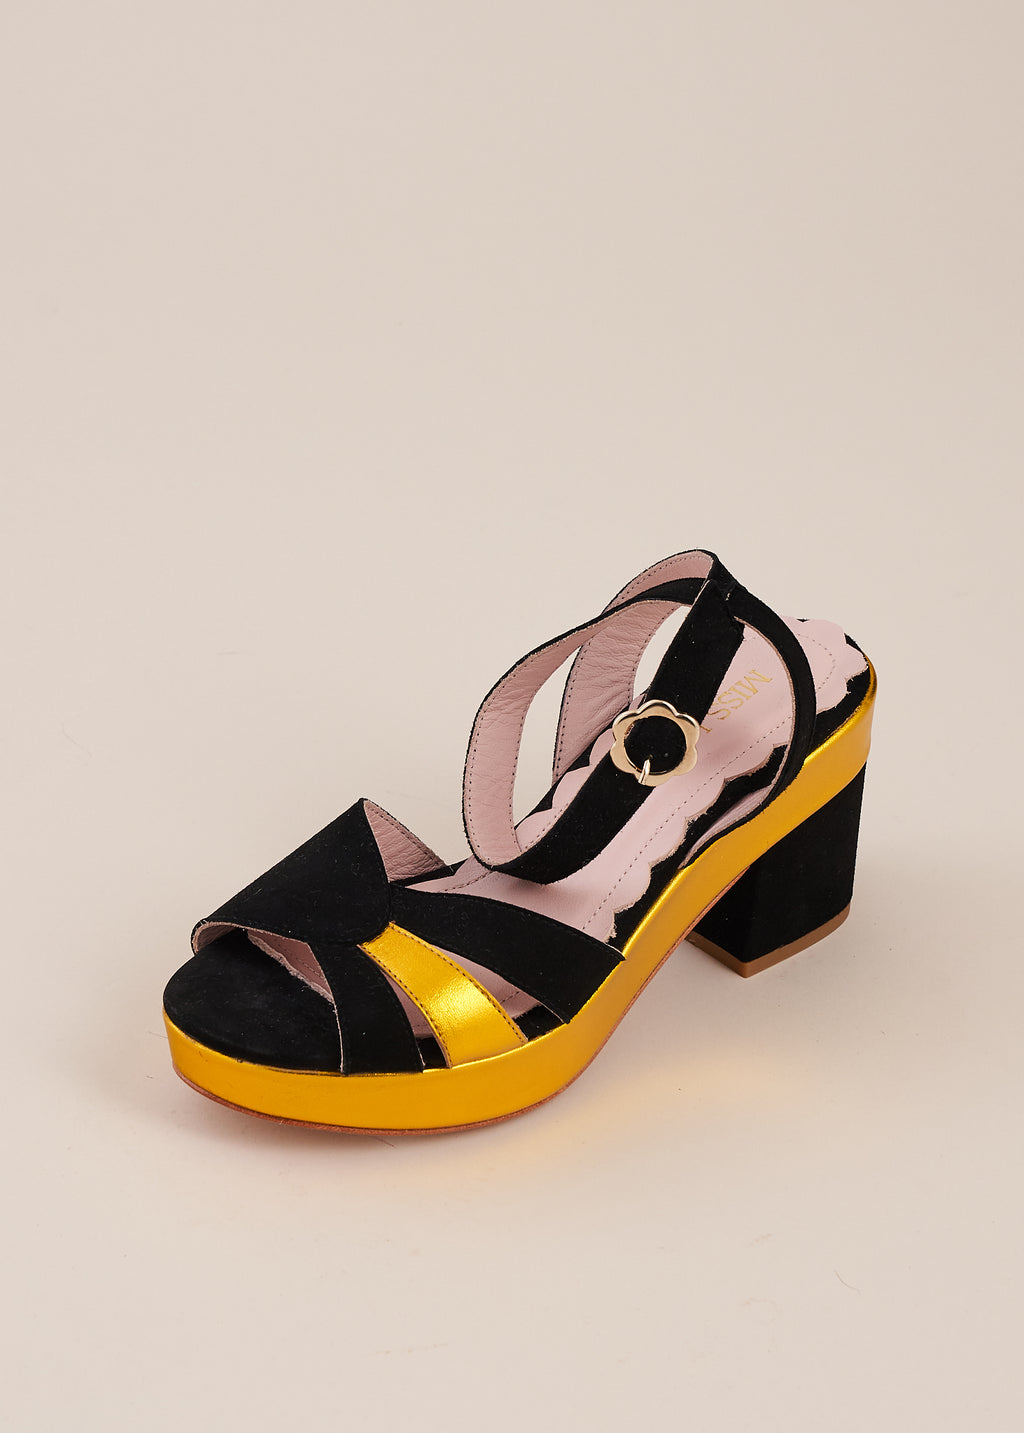 Cora Black Suede and Gold Metallic Leather